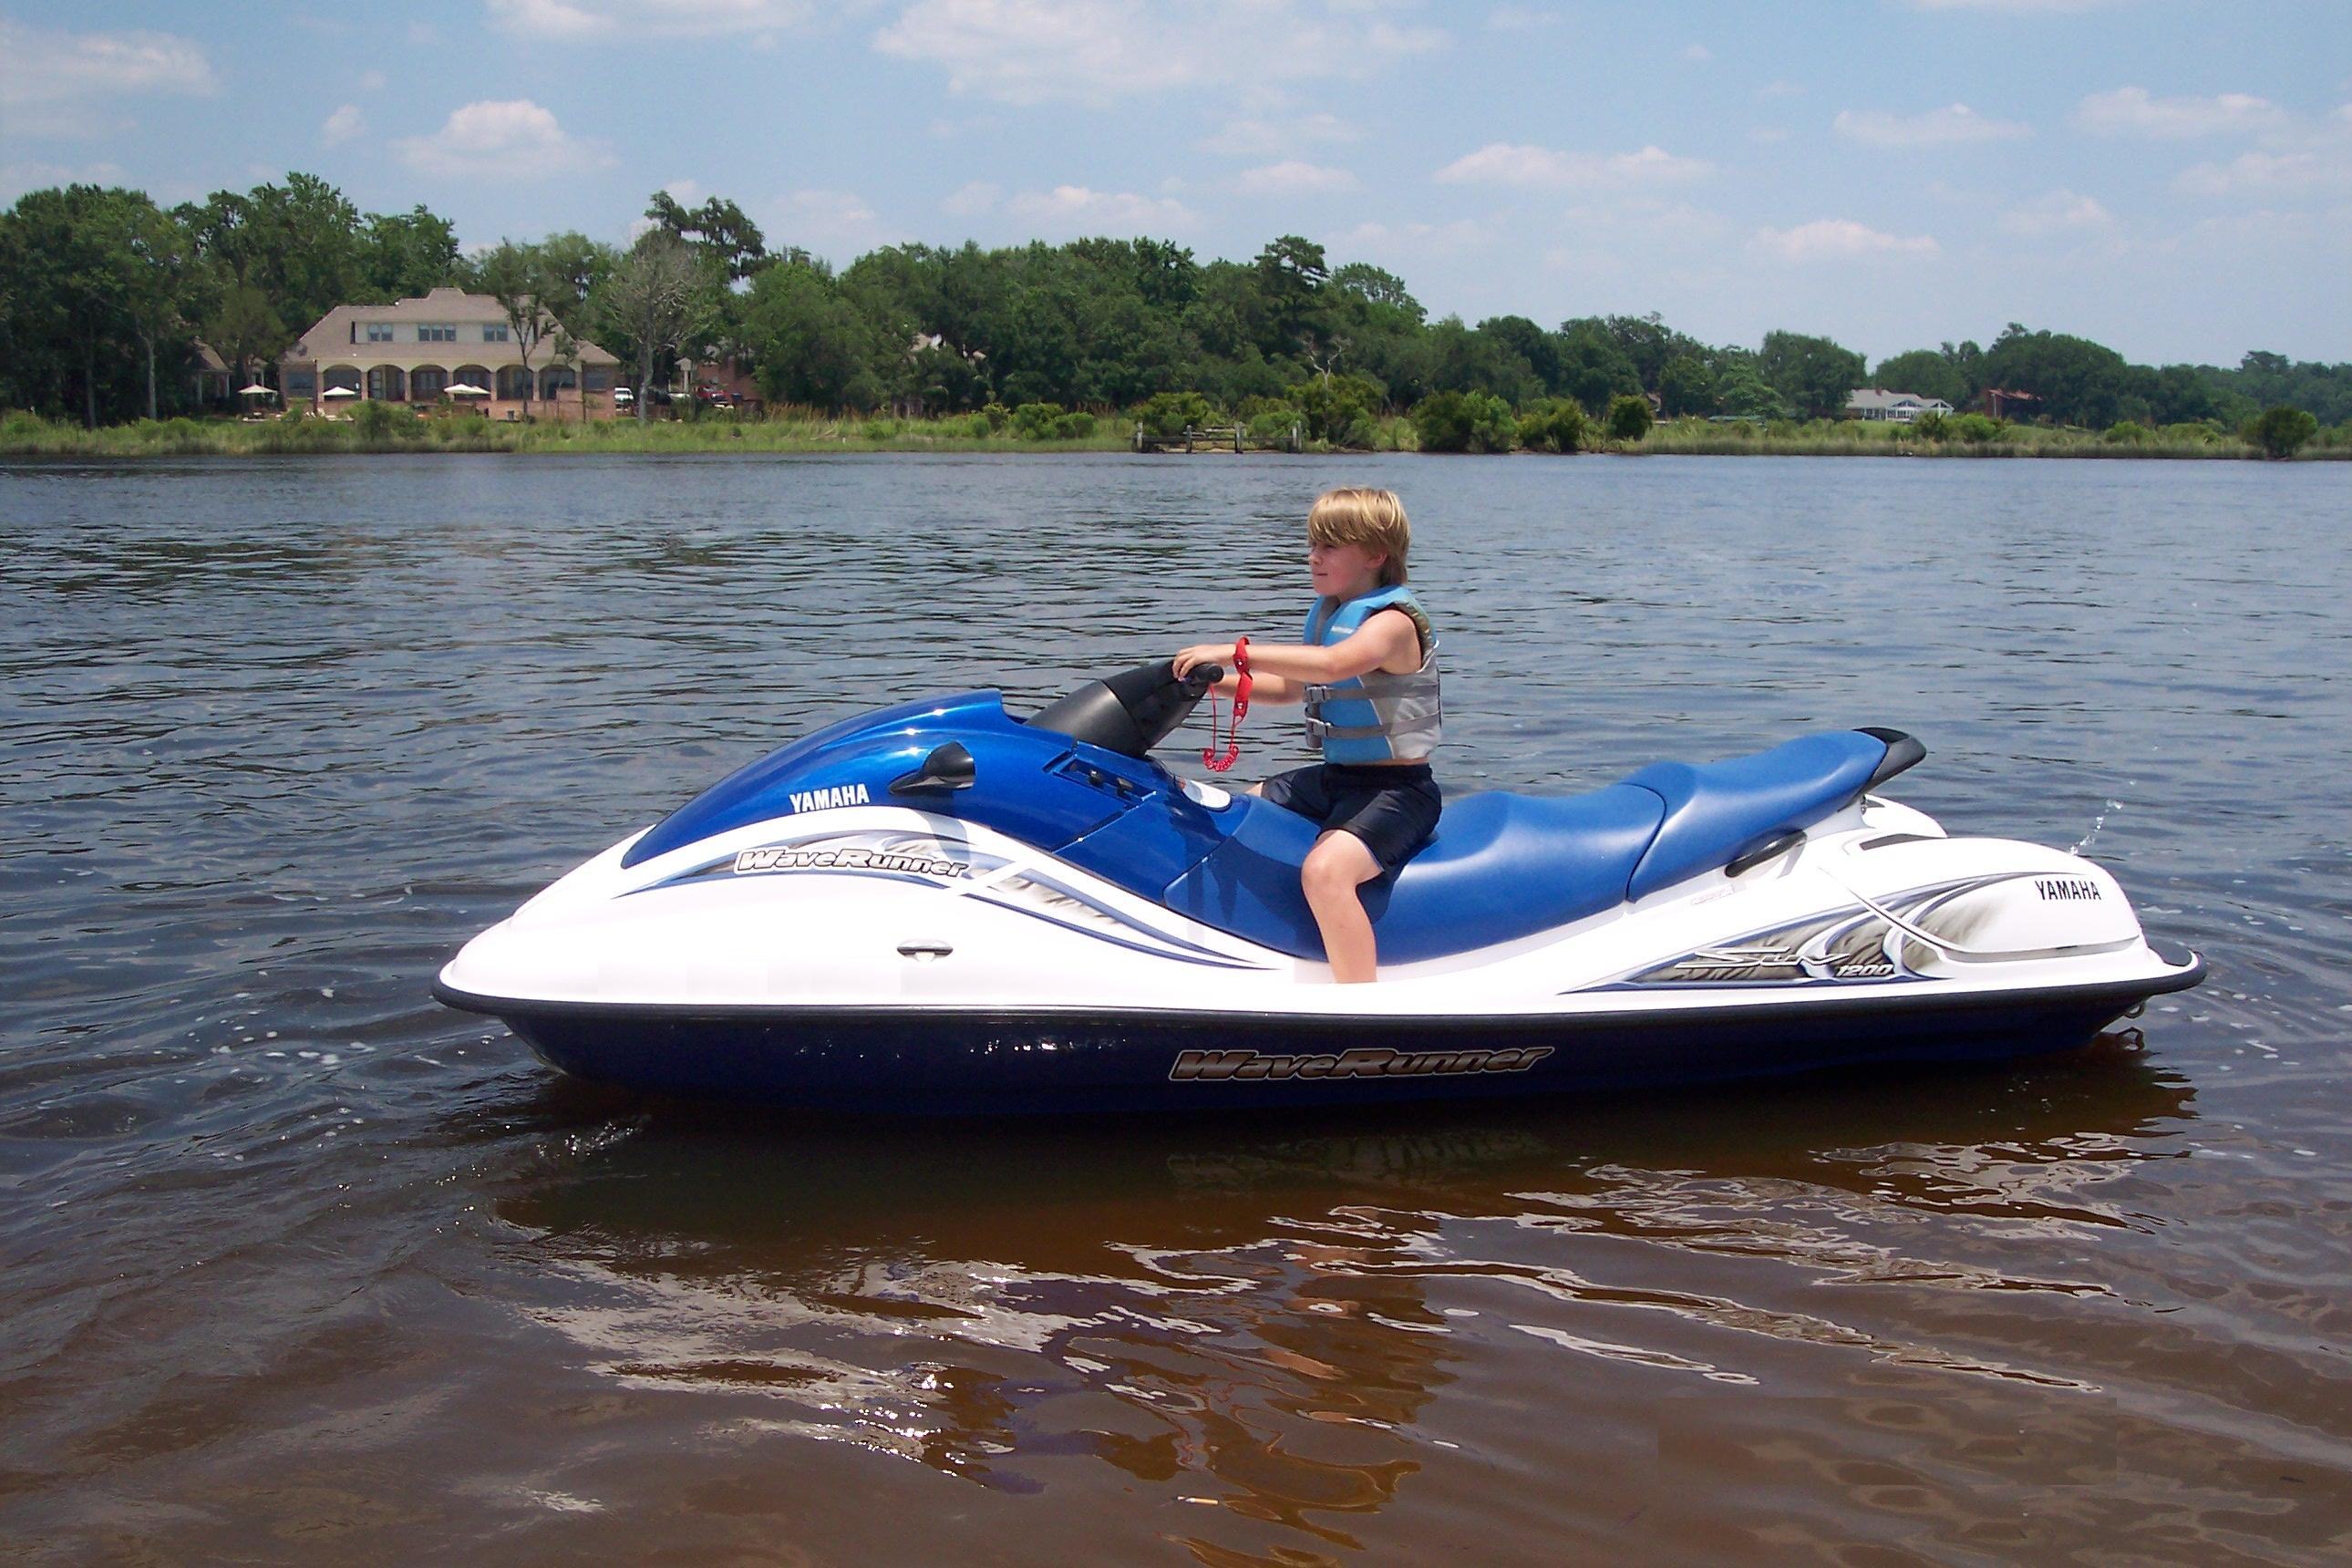 Yamaha Jet Ski Value